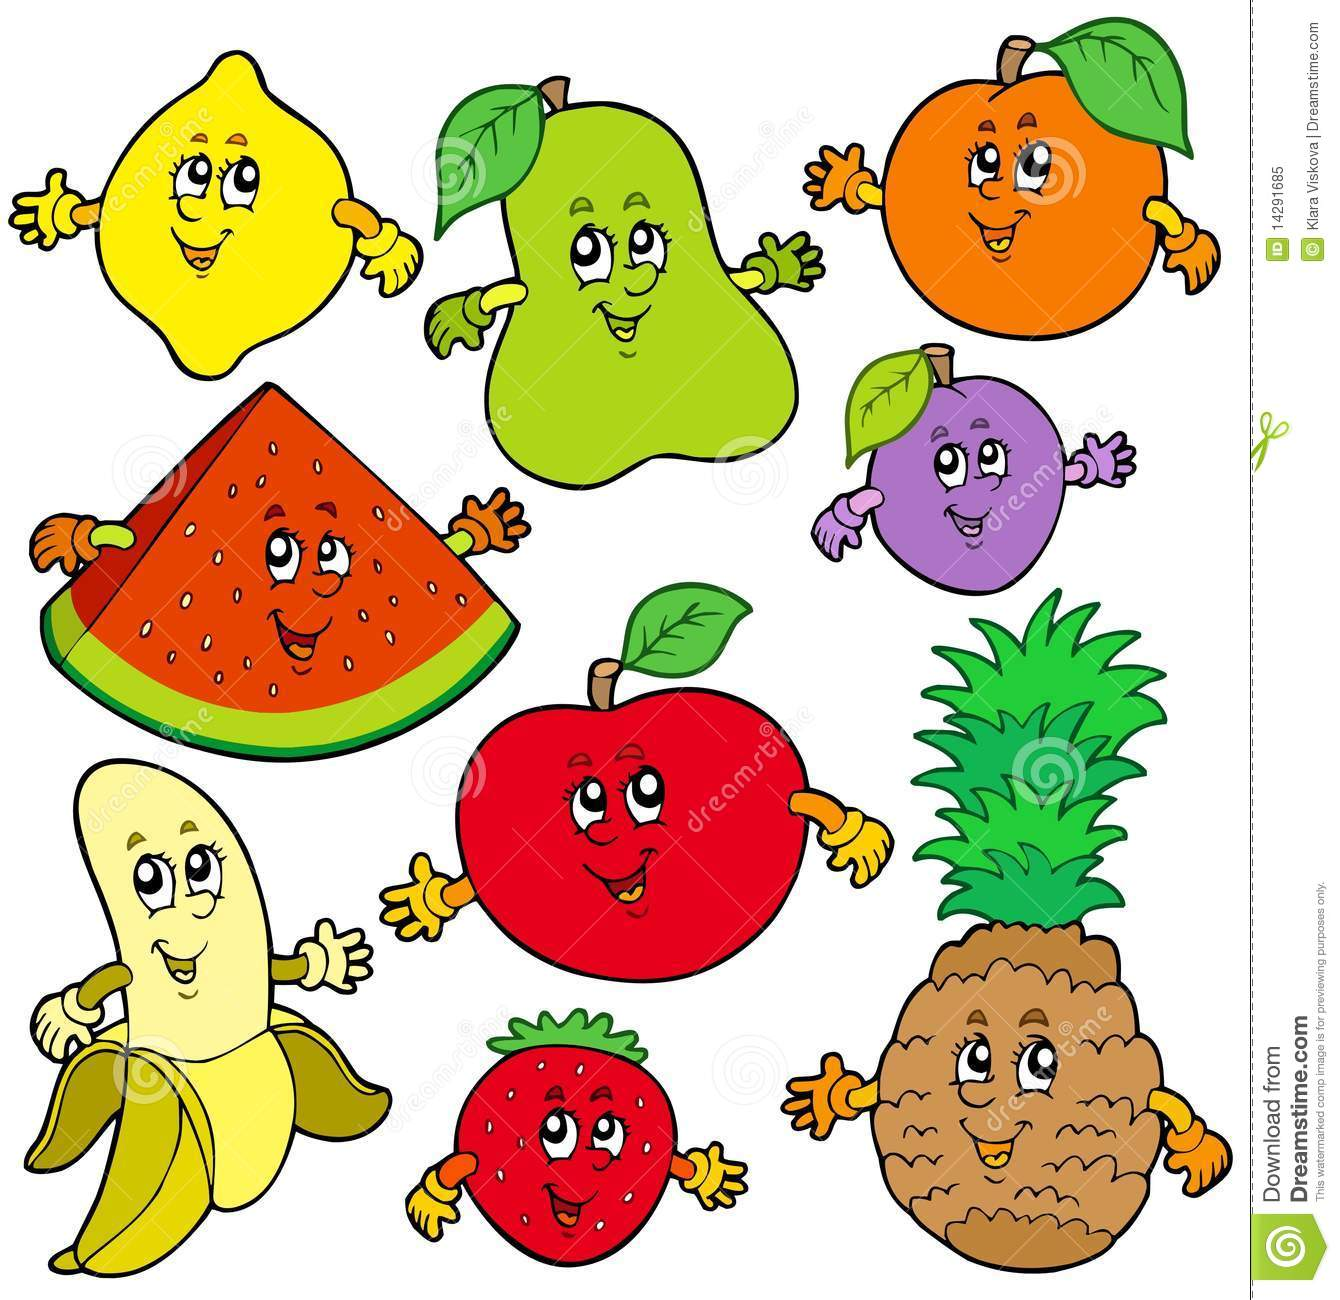 Fruit Dessin divers fruits de dessin animé illustration de vecteur - illustration